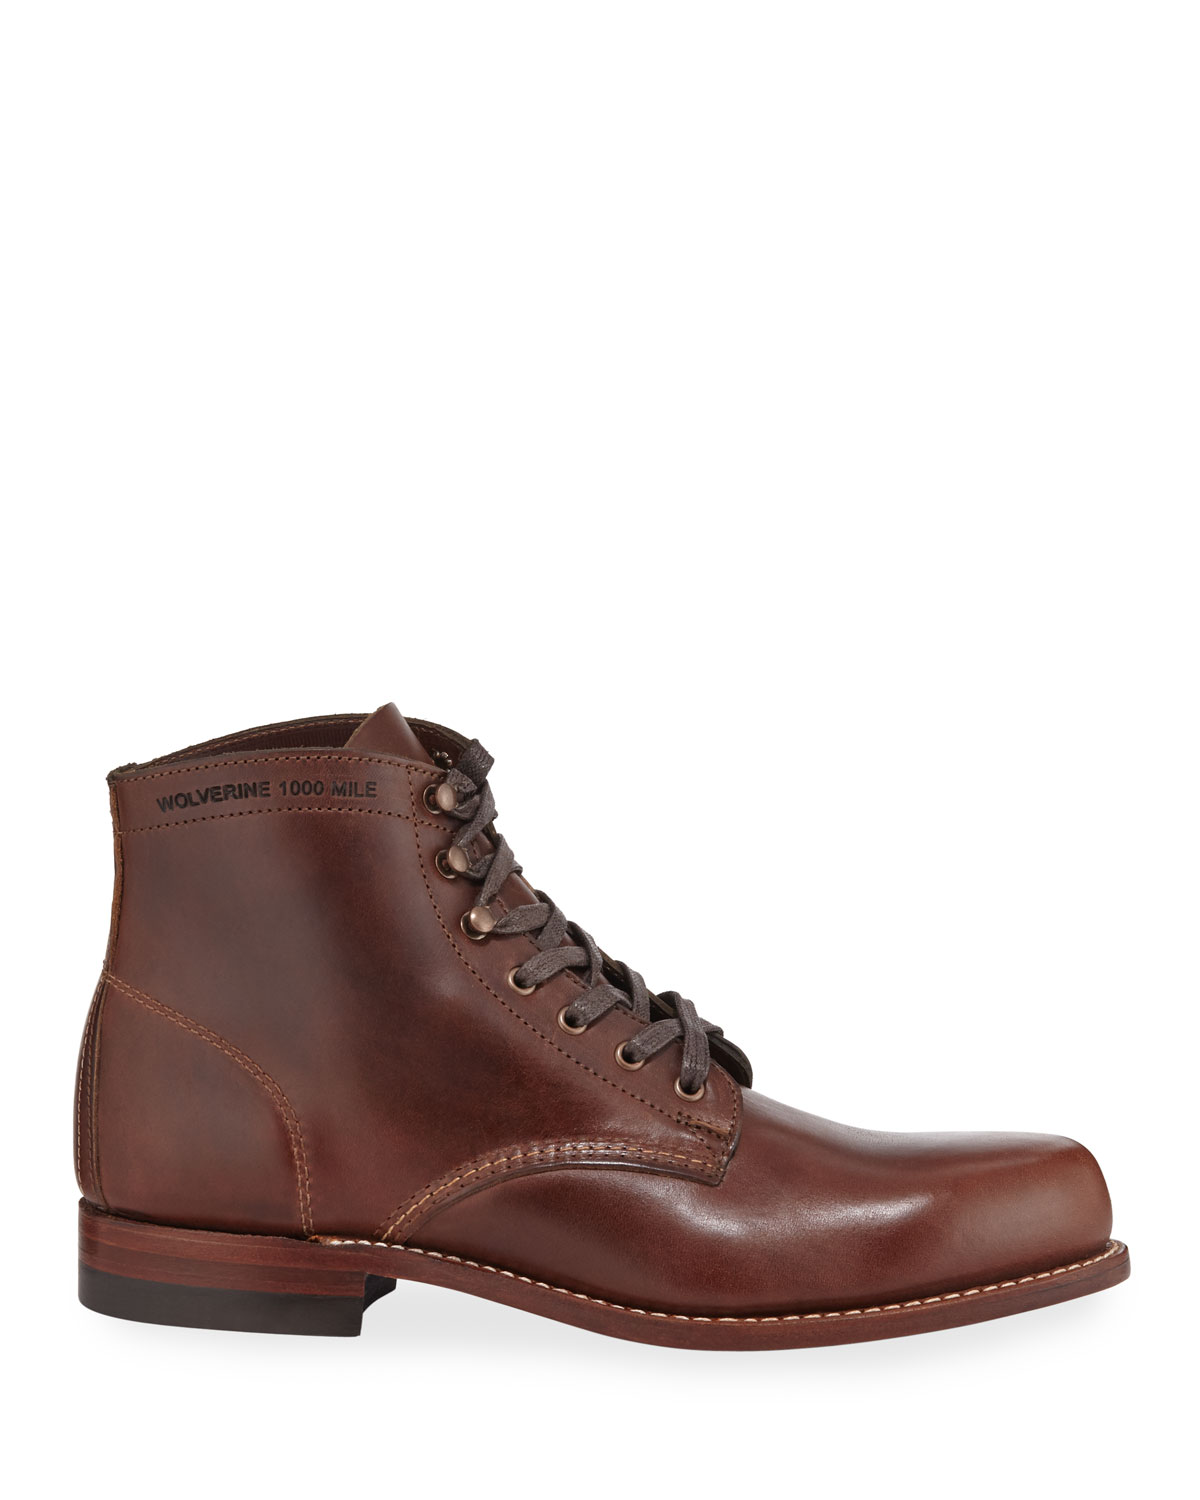 a9ce38639aa Cordovan 1000 Mile Boots, Brown